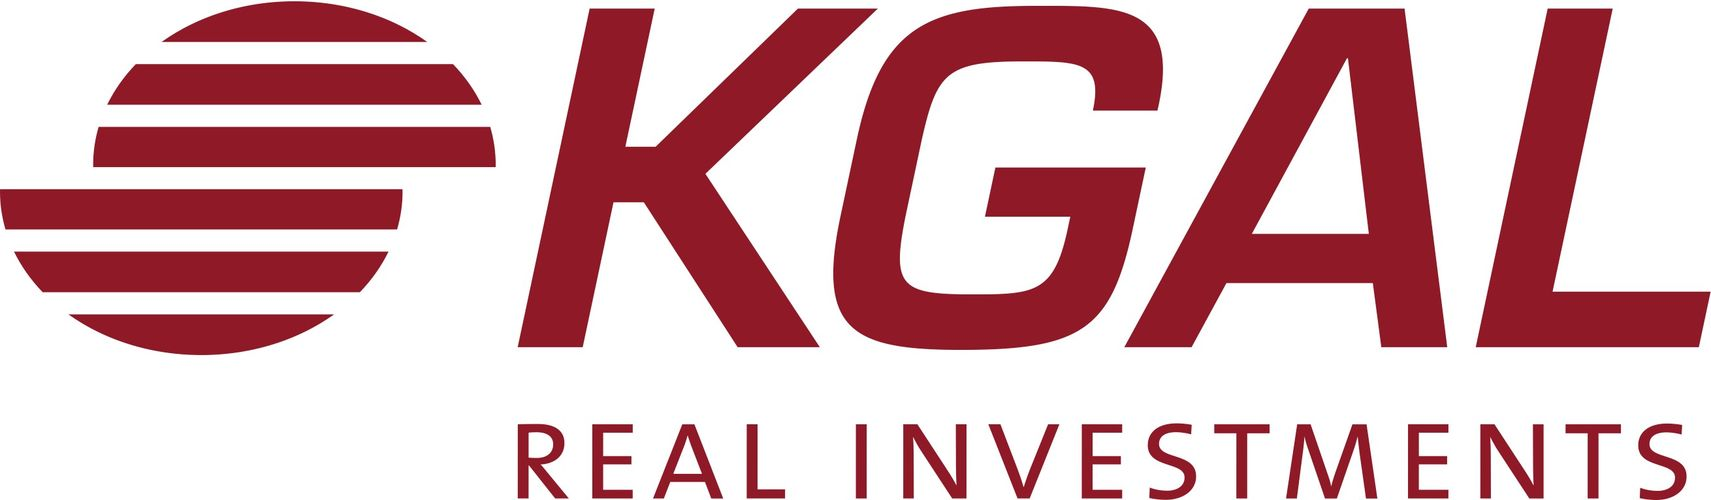 KGAL Real Investments